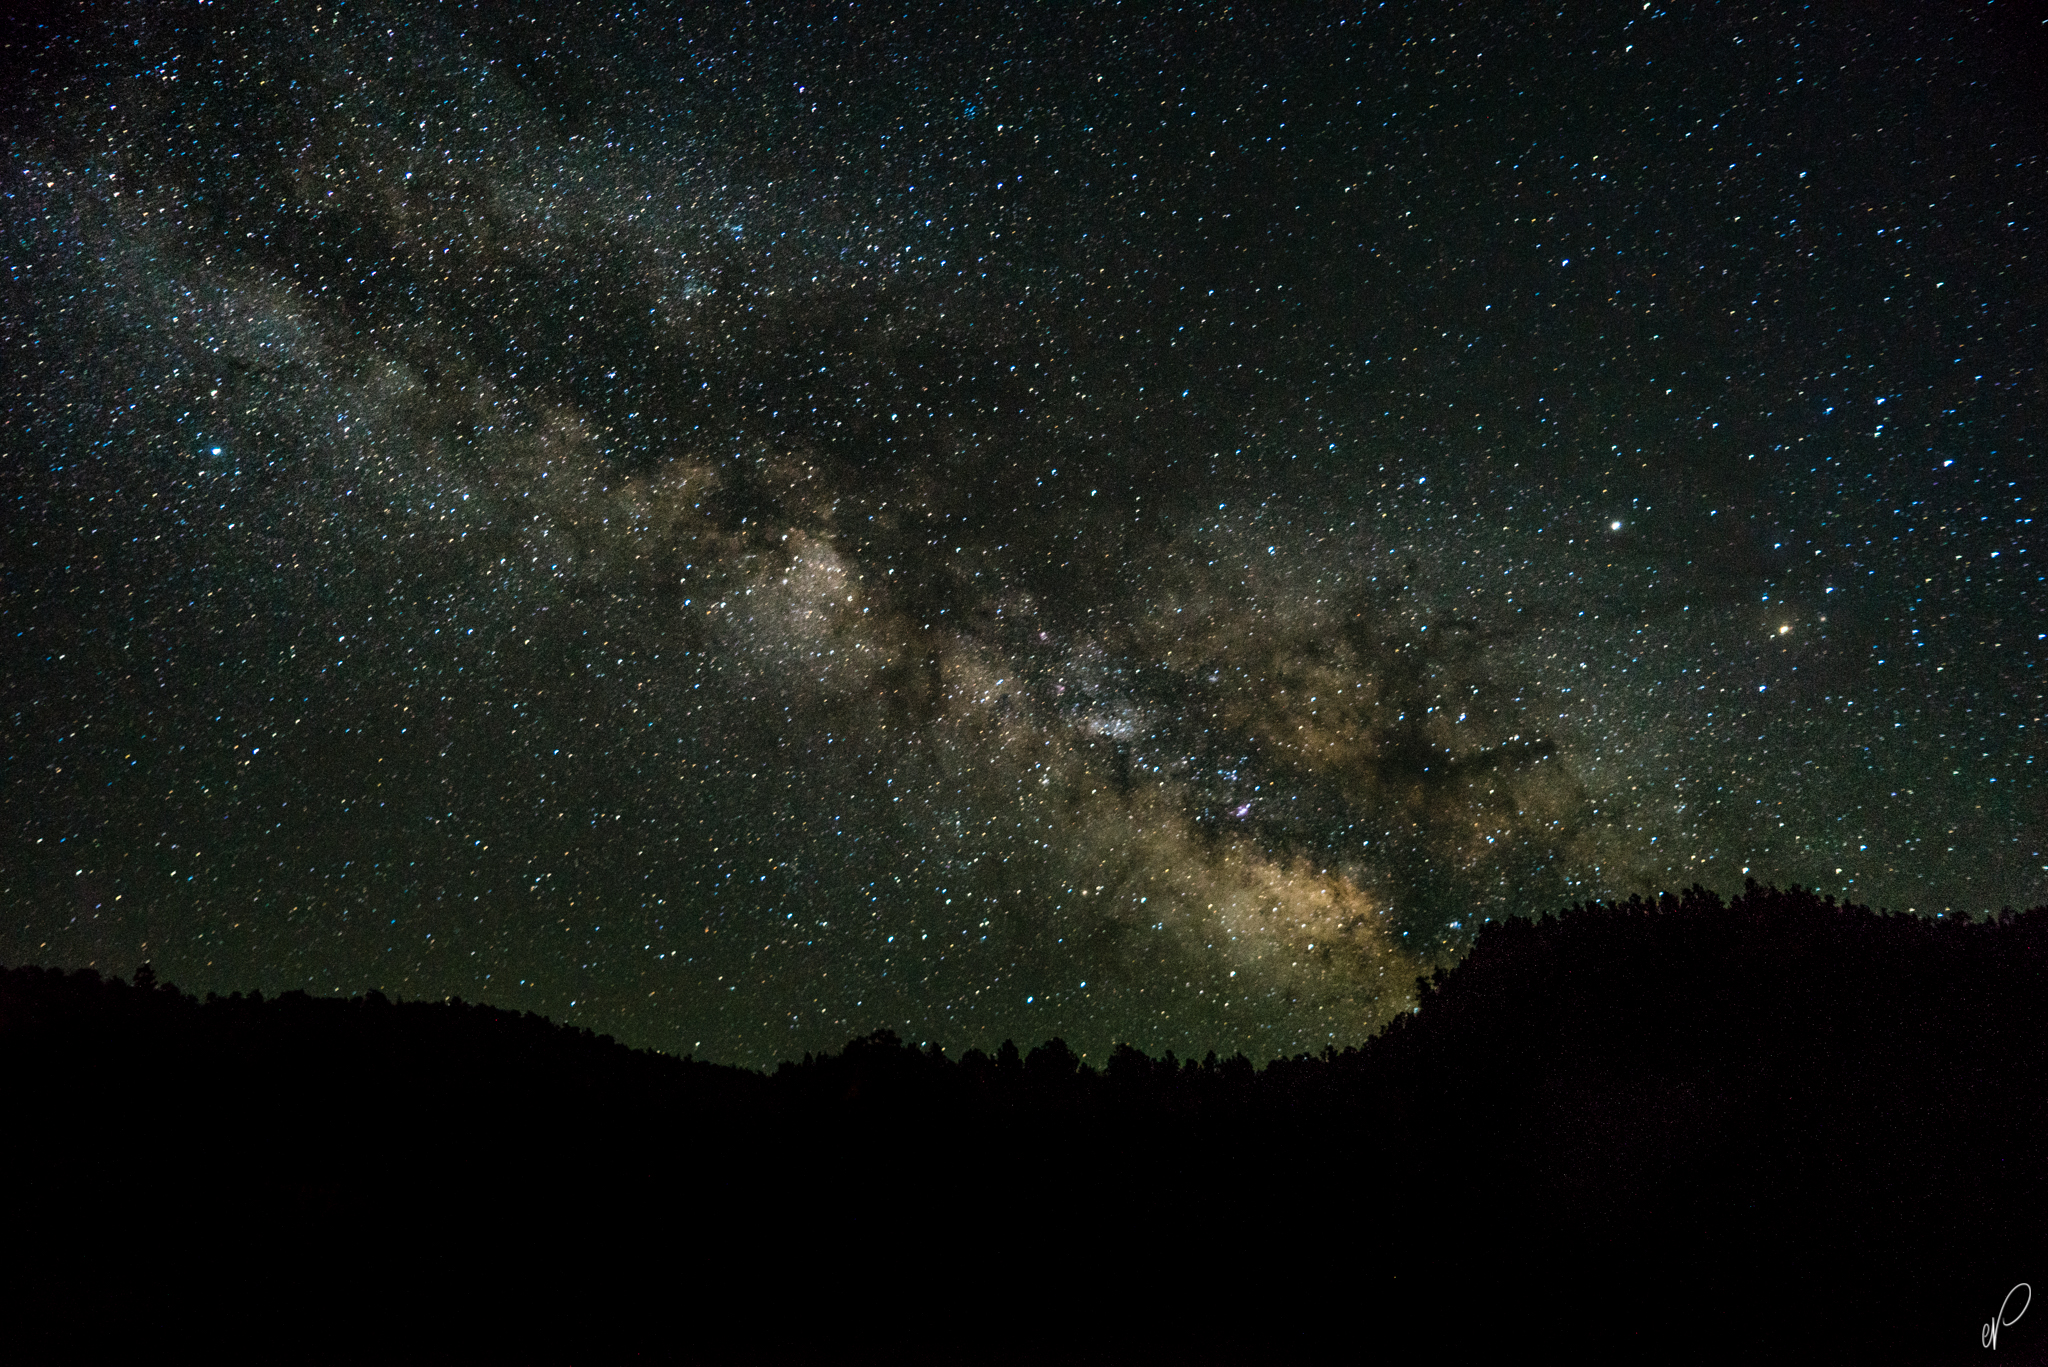 The milky way as seen from our campsite.